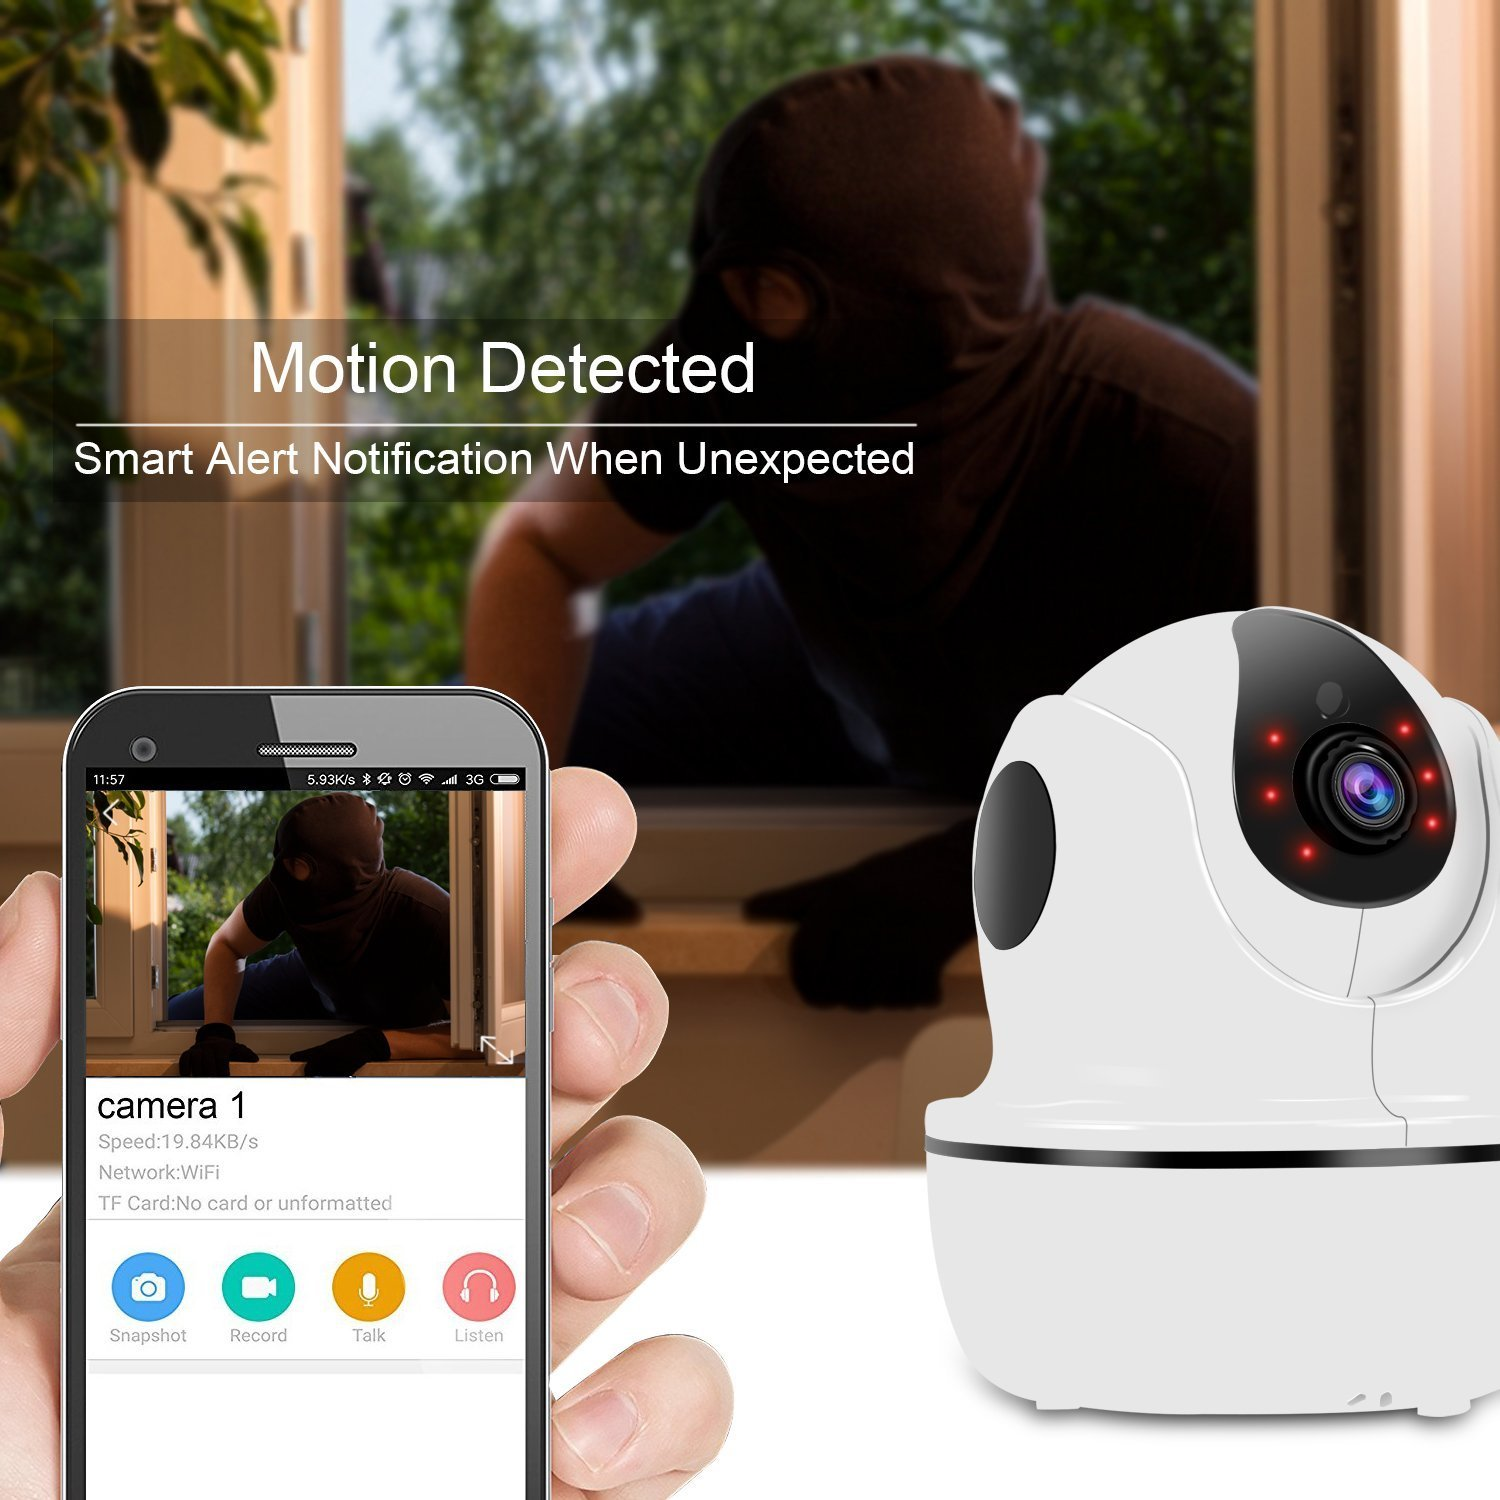 1080P HD Security Camera,Sea Wit Wireless IP Camera with Pan/Tilt/Zoom, Two Way Audio,Control Appliances,107°Viewing Angle,Night Vision,Home Surveillance Camera,Baby Pet Nanny Camera Puppy Cam –White by Sea Wit (Image #6)